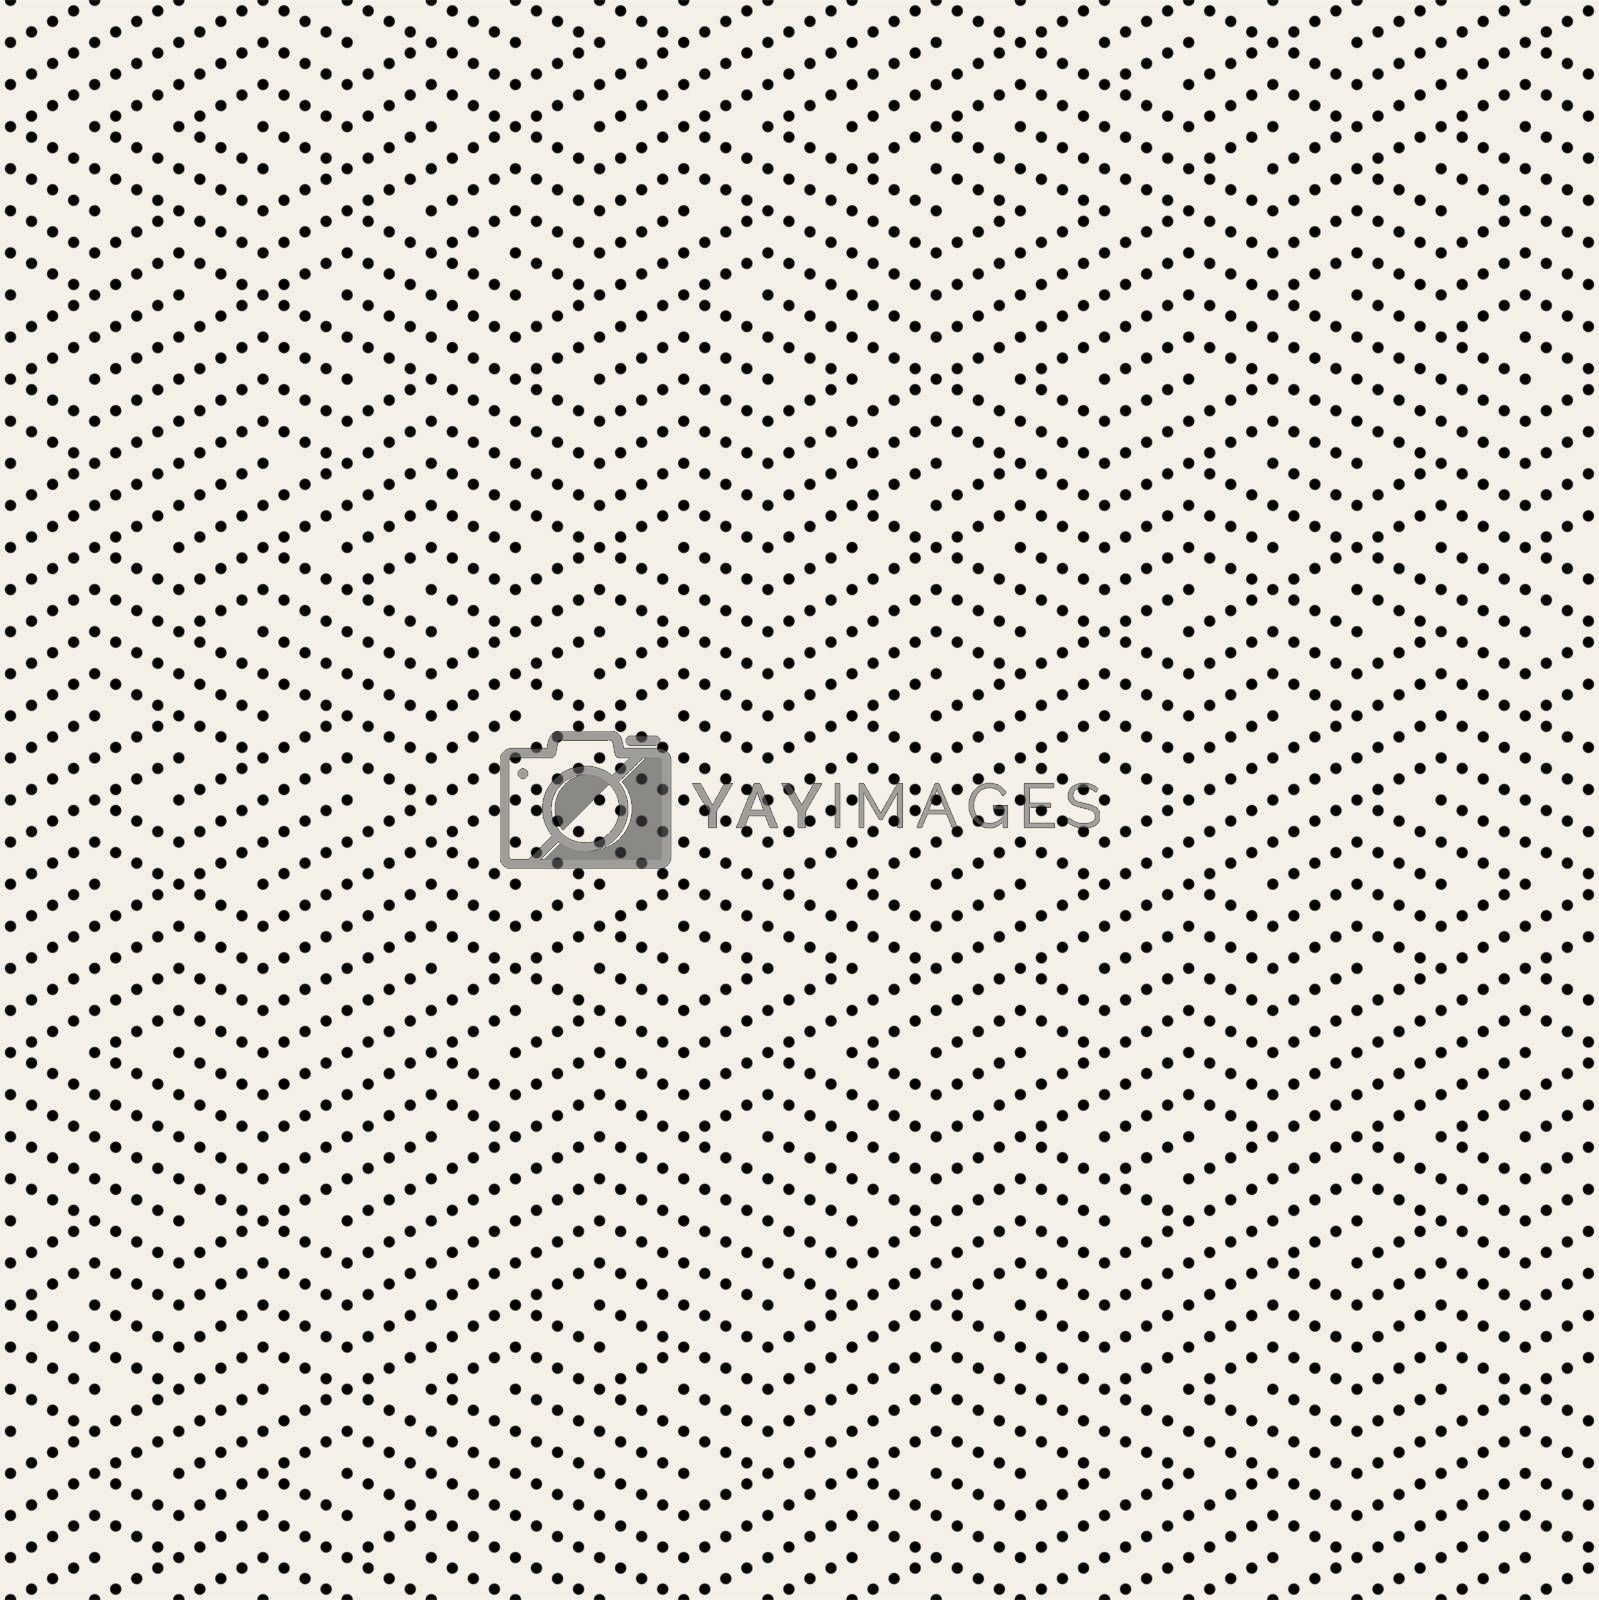 Vector Seamless Black and White Dotted Lines Maze Pattern. Abstract Geometric Background Design